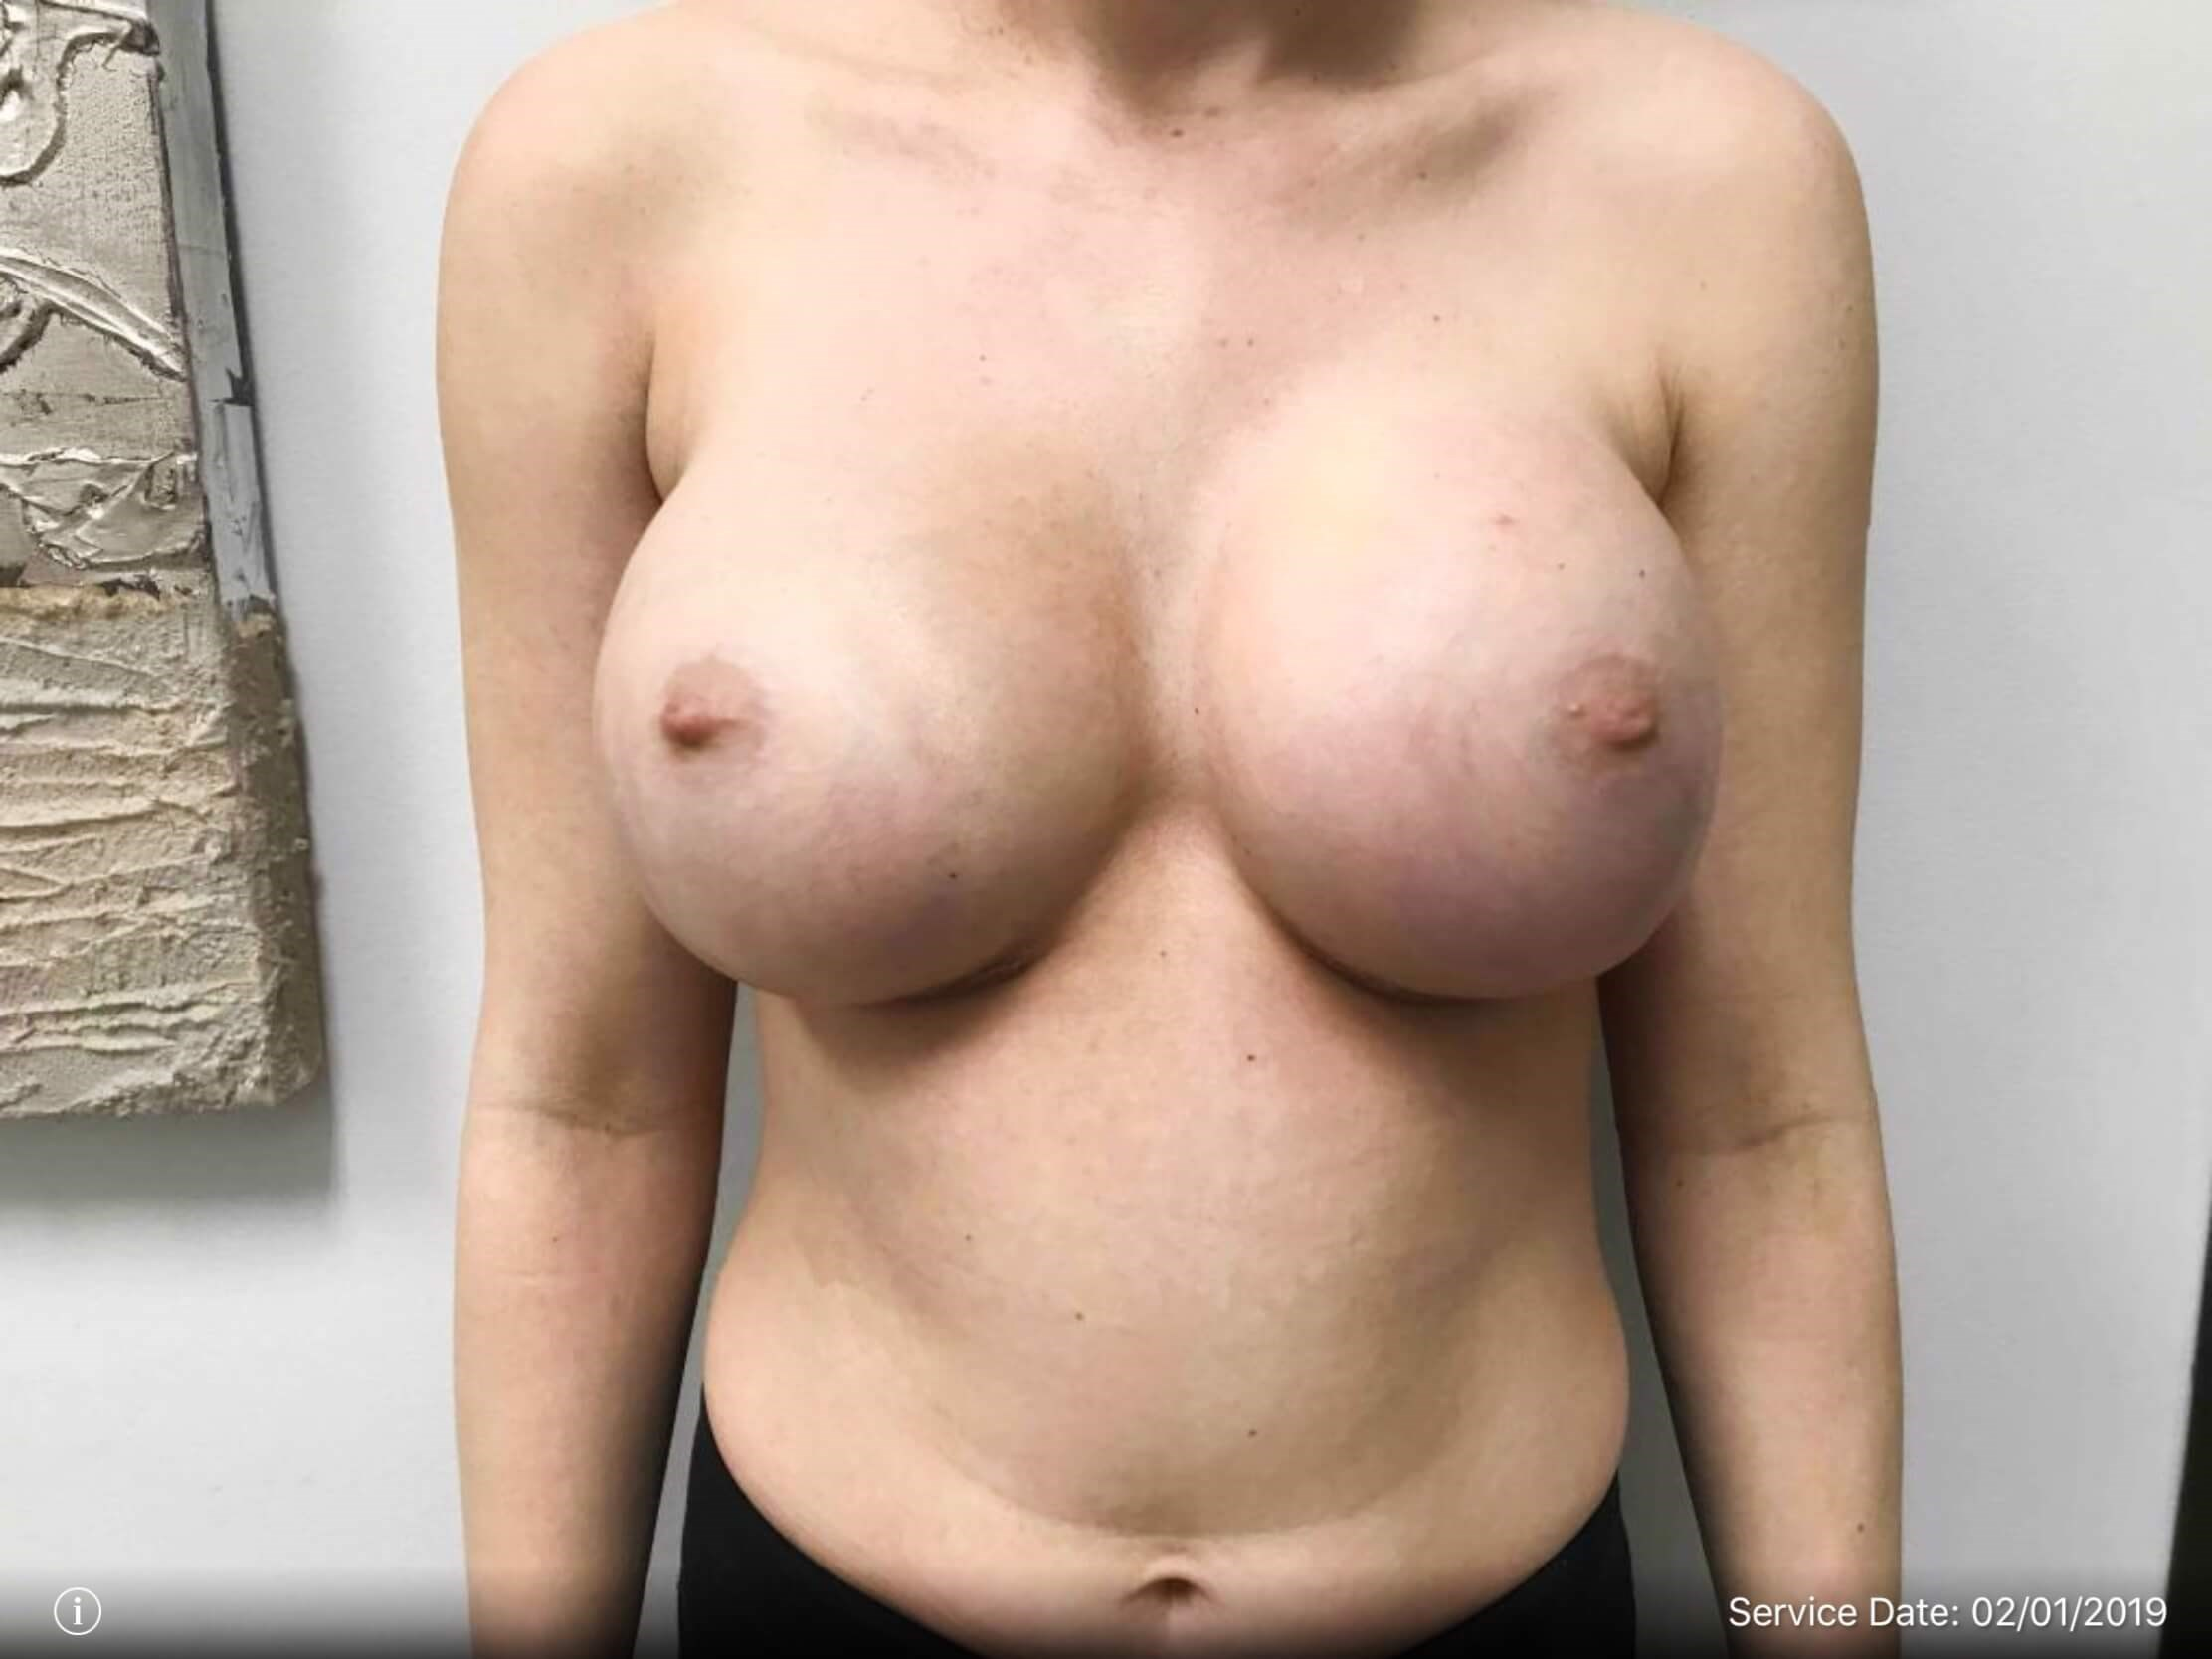 Front View Breast Augmentation 1 Week Post